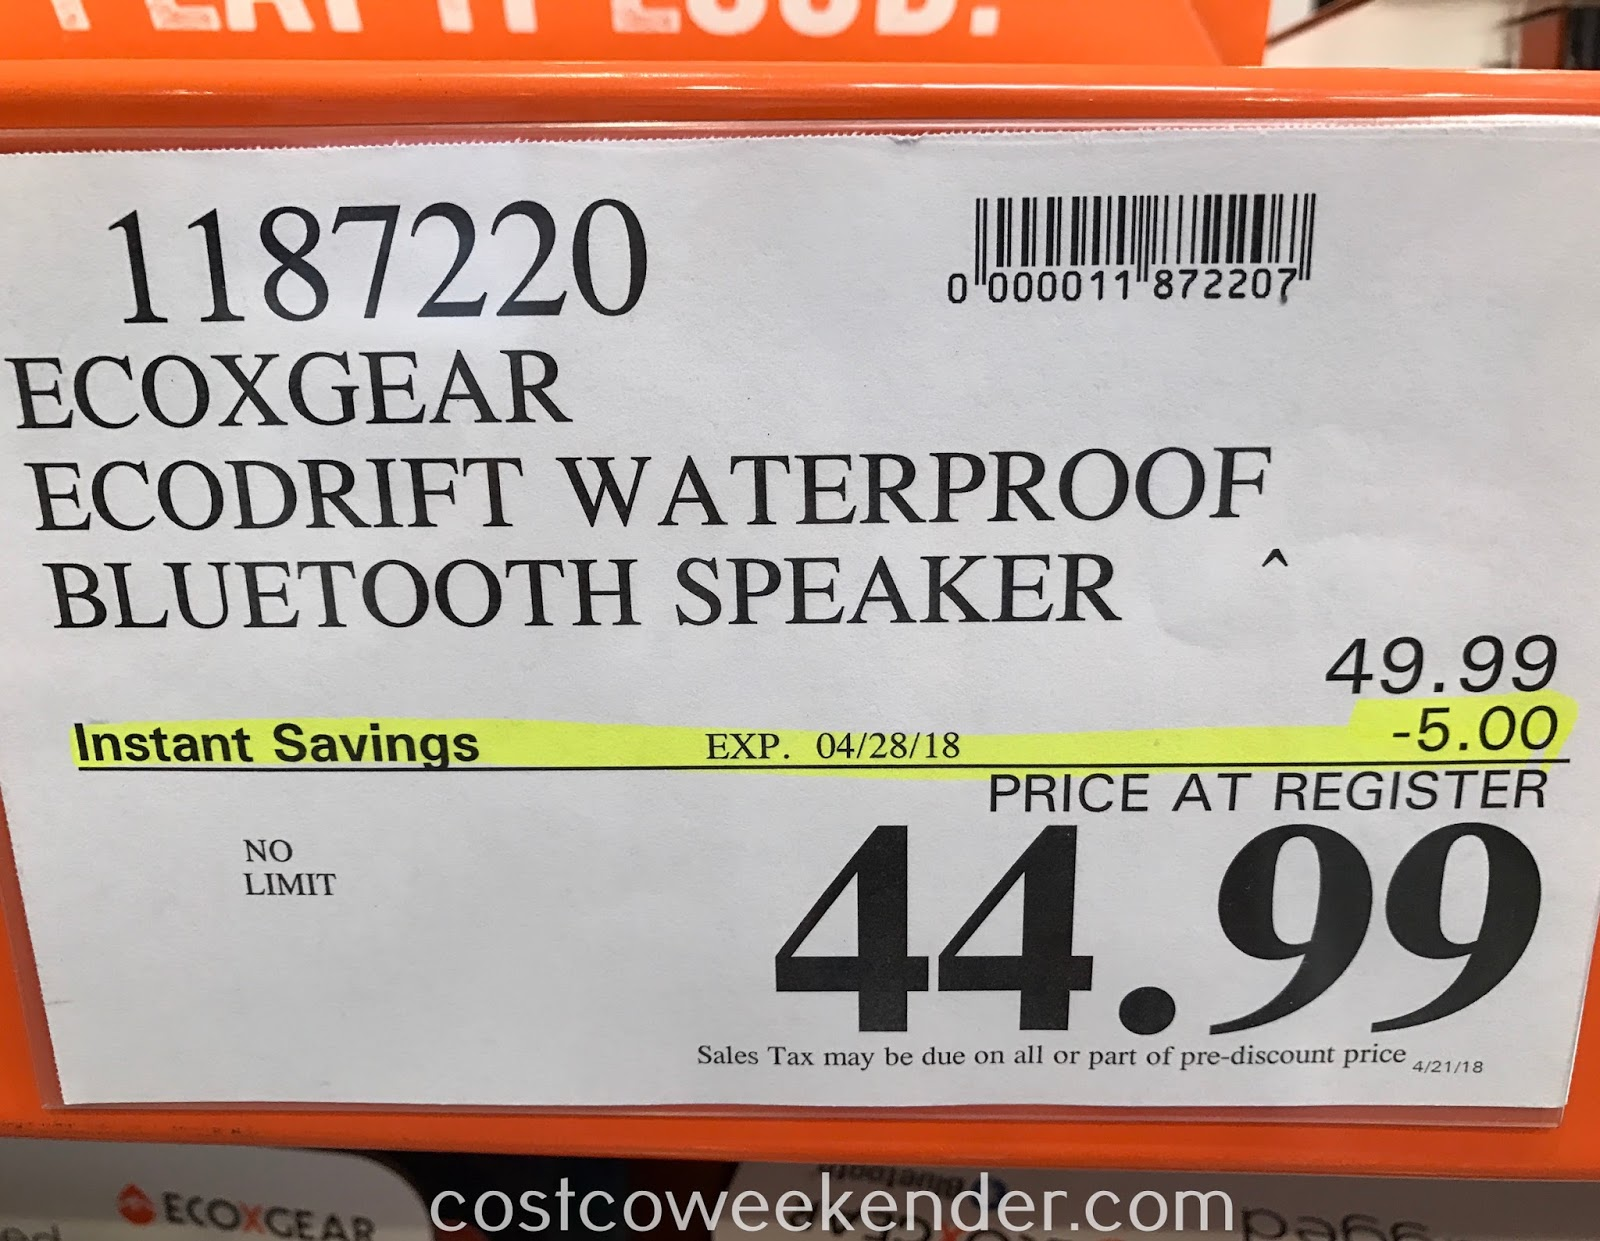 Deal for the EcoXGear EcoDrift Waterproof Rugged Speaker at Costco